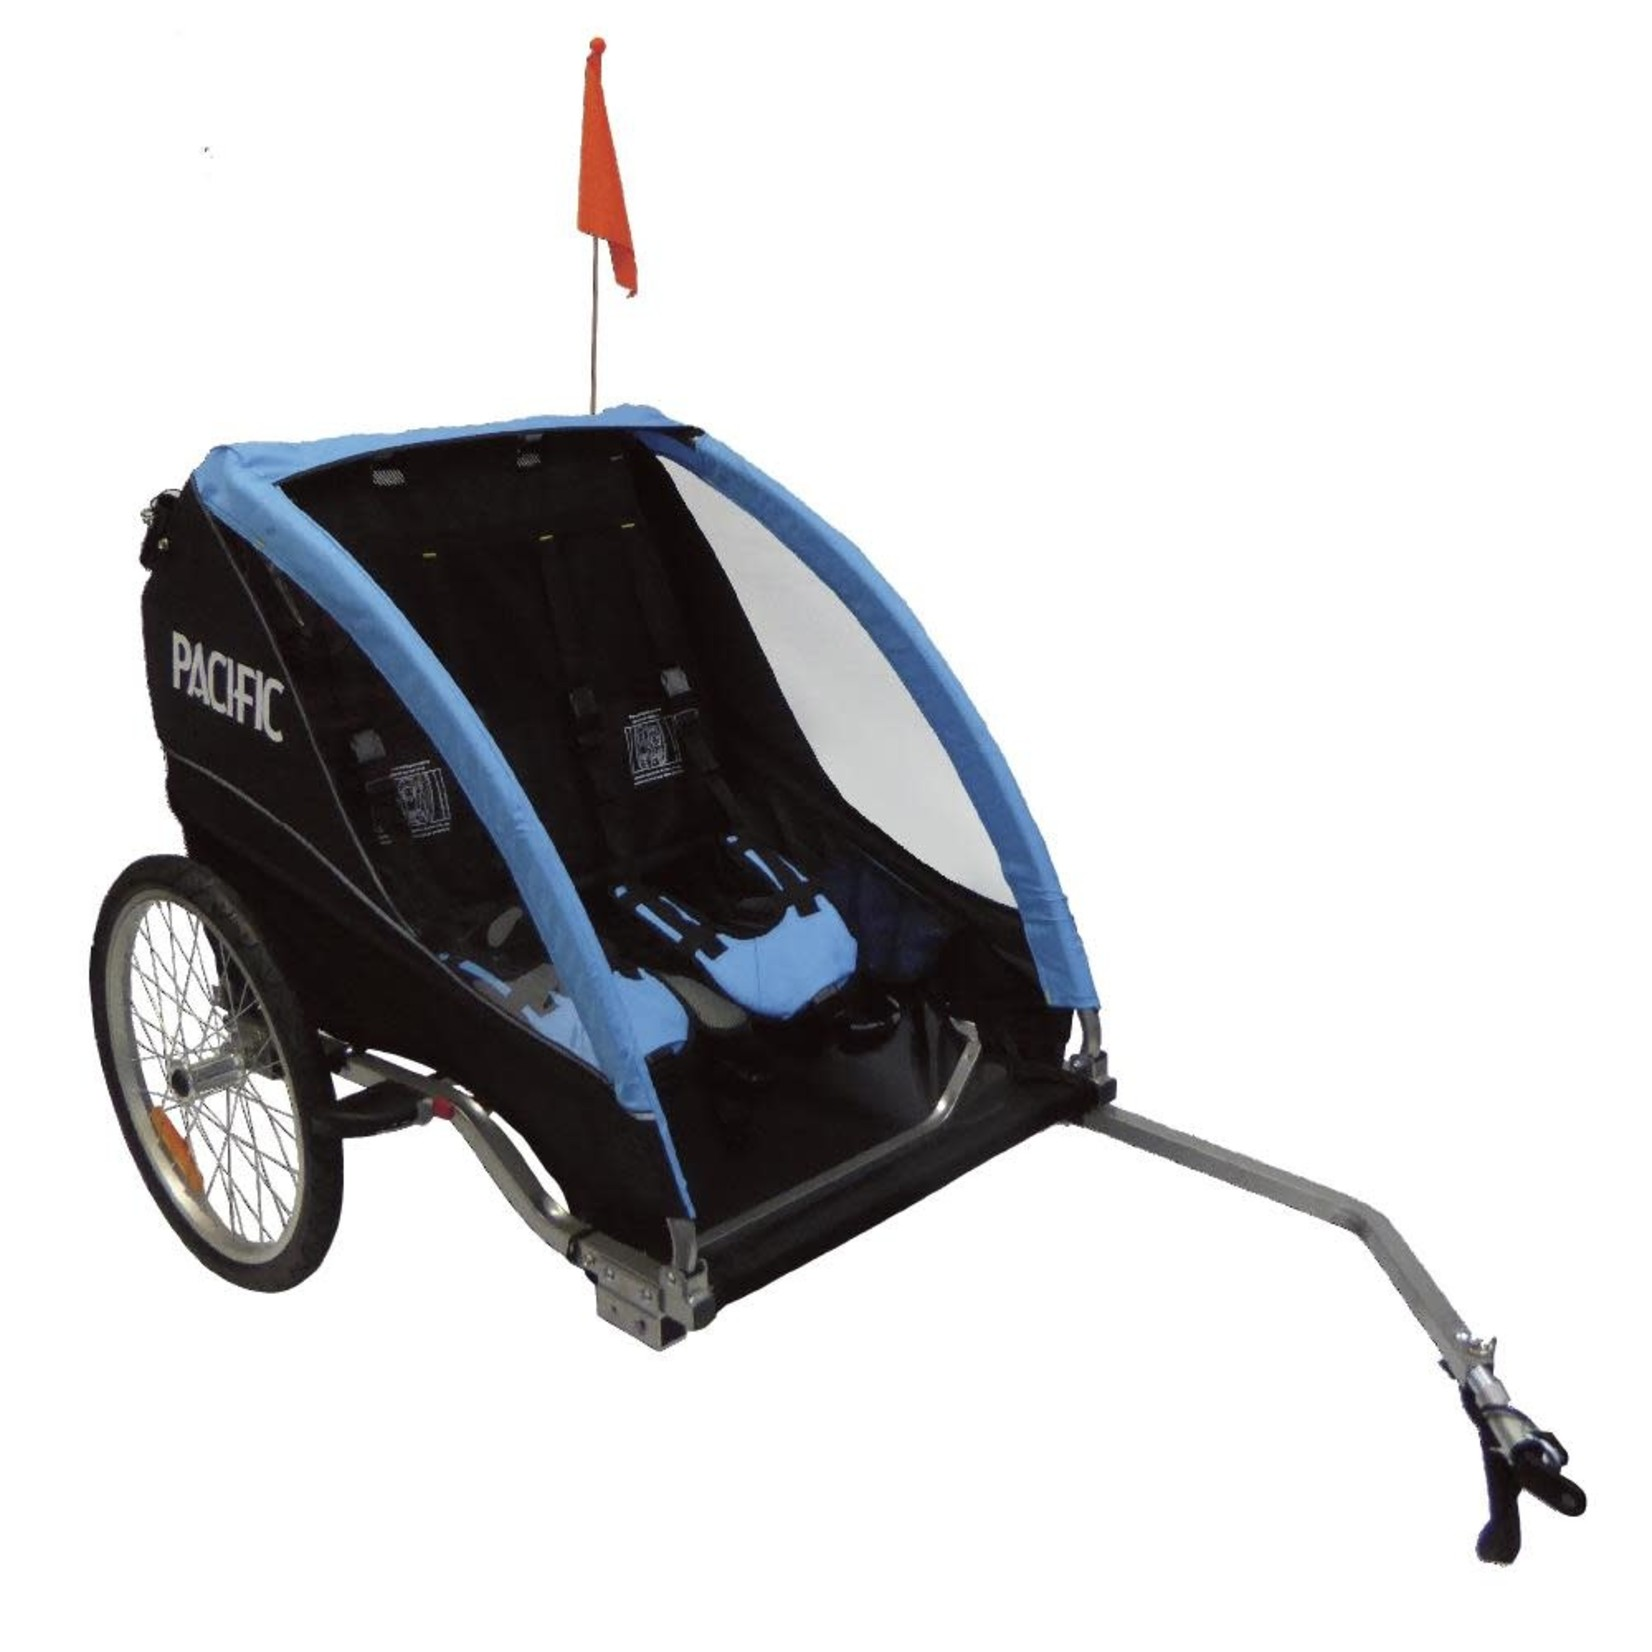 Pacific Deluxe Alloy 2 In 1 Trailer/Stroller - 2 Child